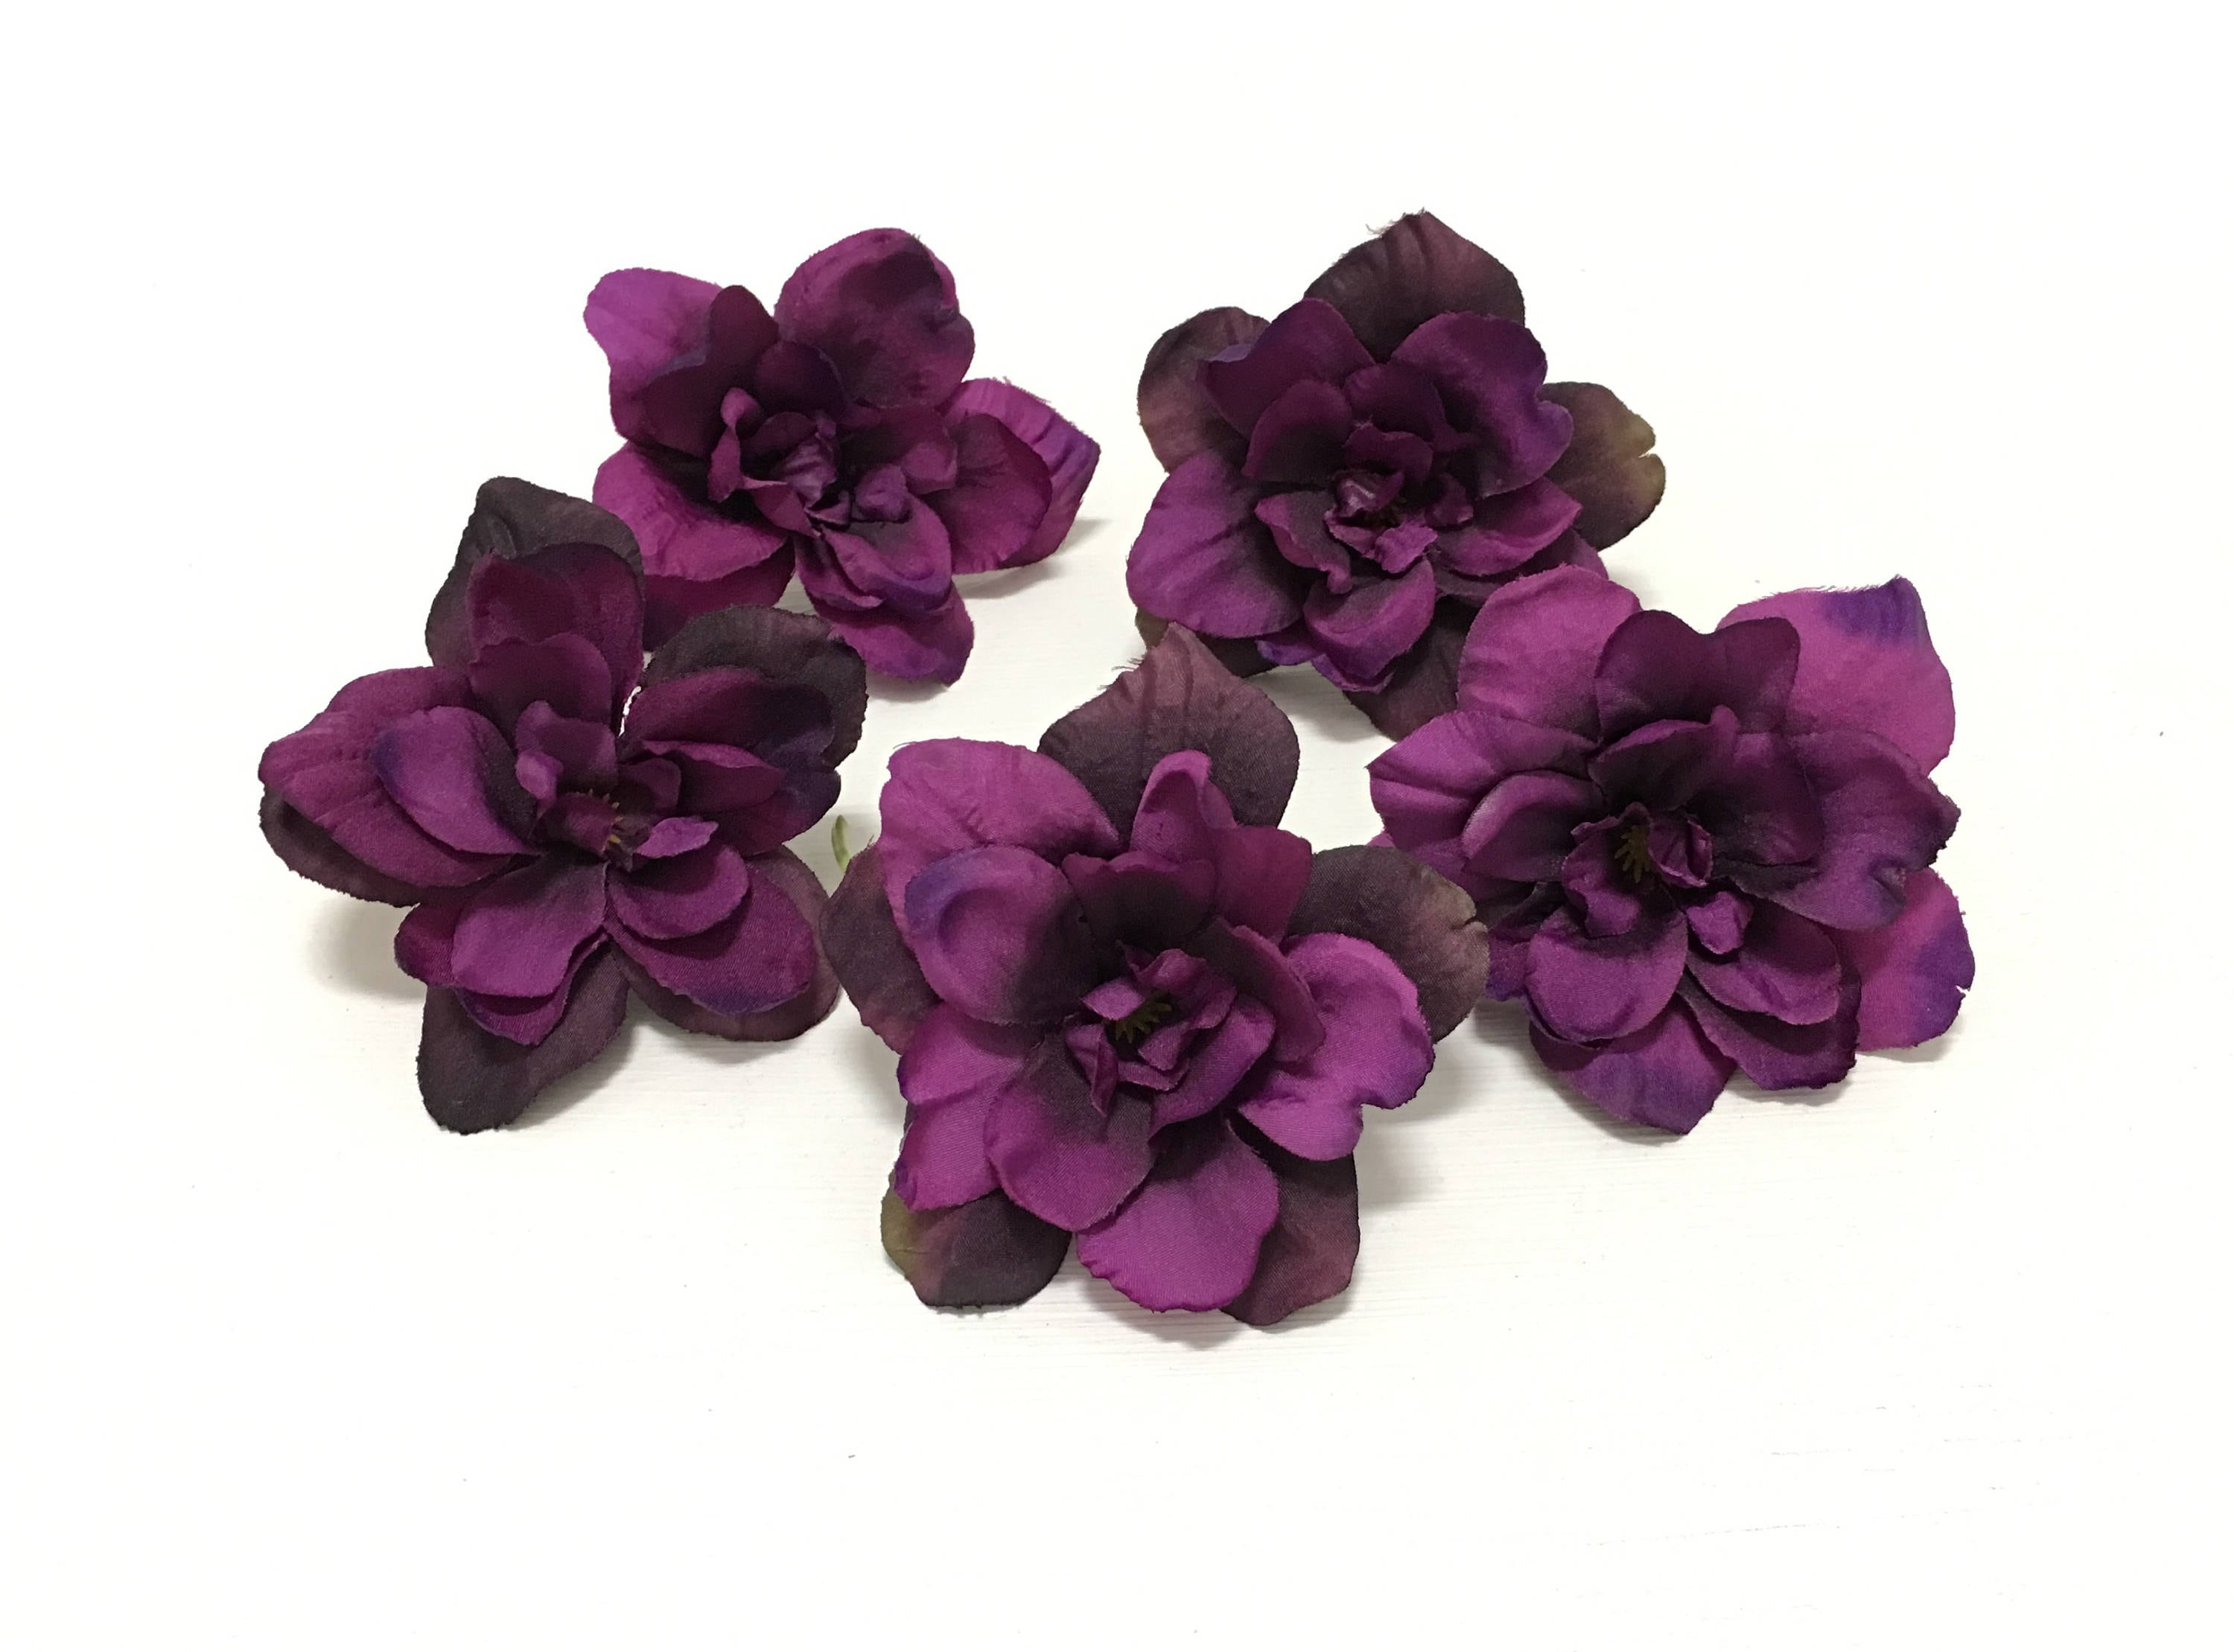 5 Eggplant Purple Delphinium Blossoms 3 Inches Artificial Etsy